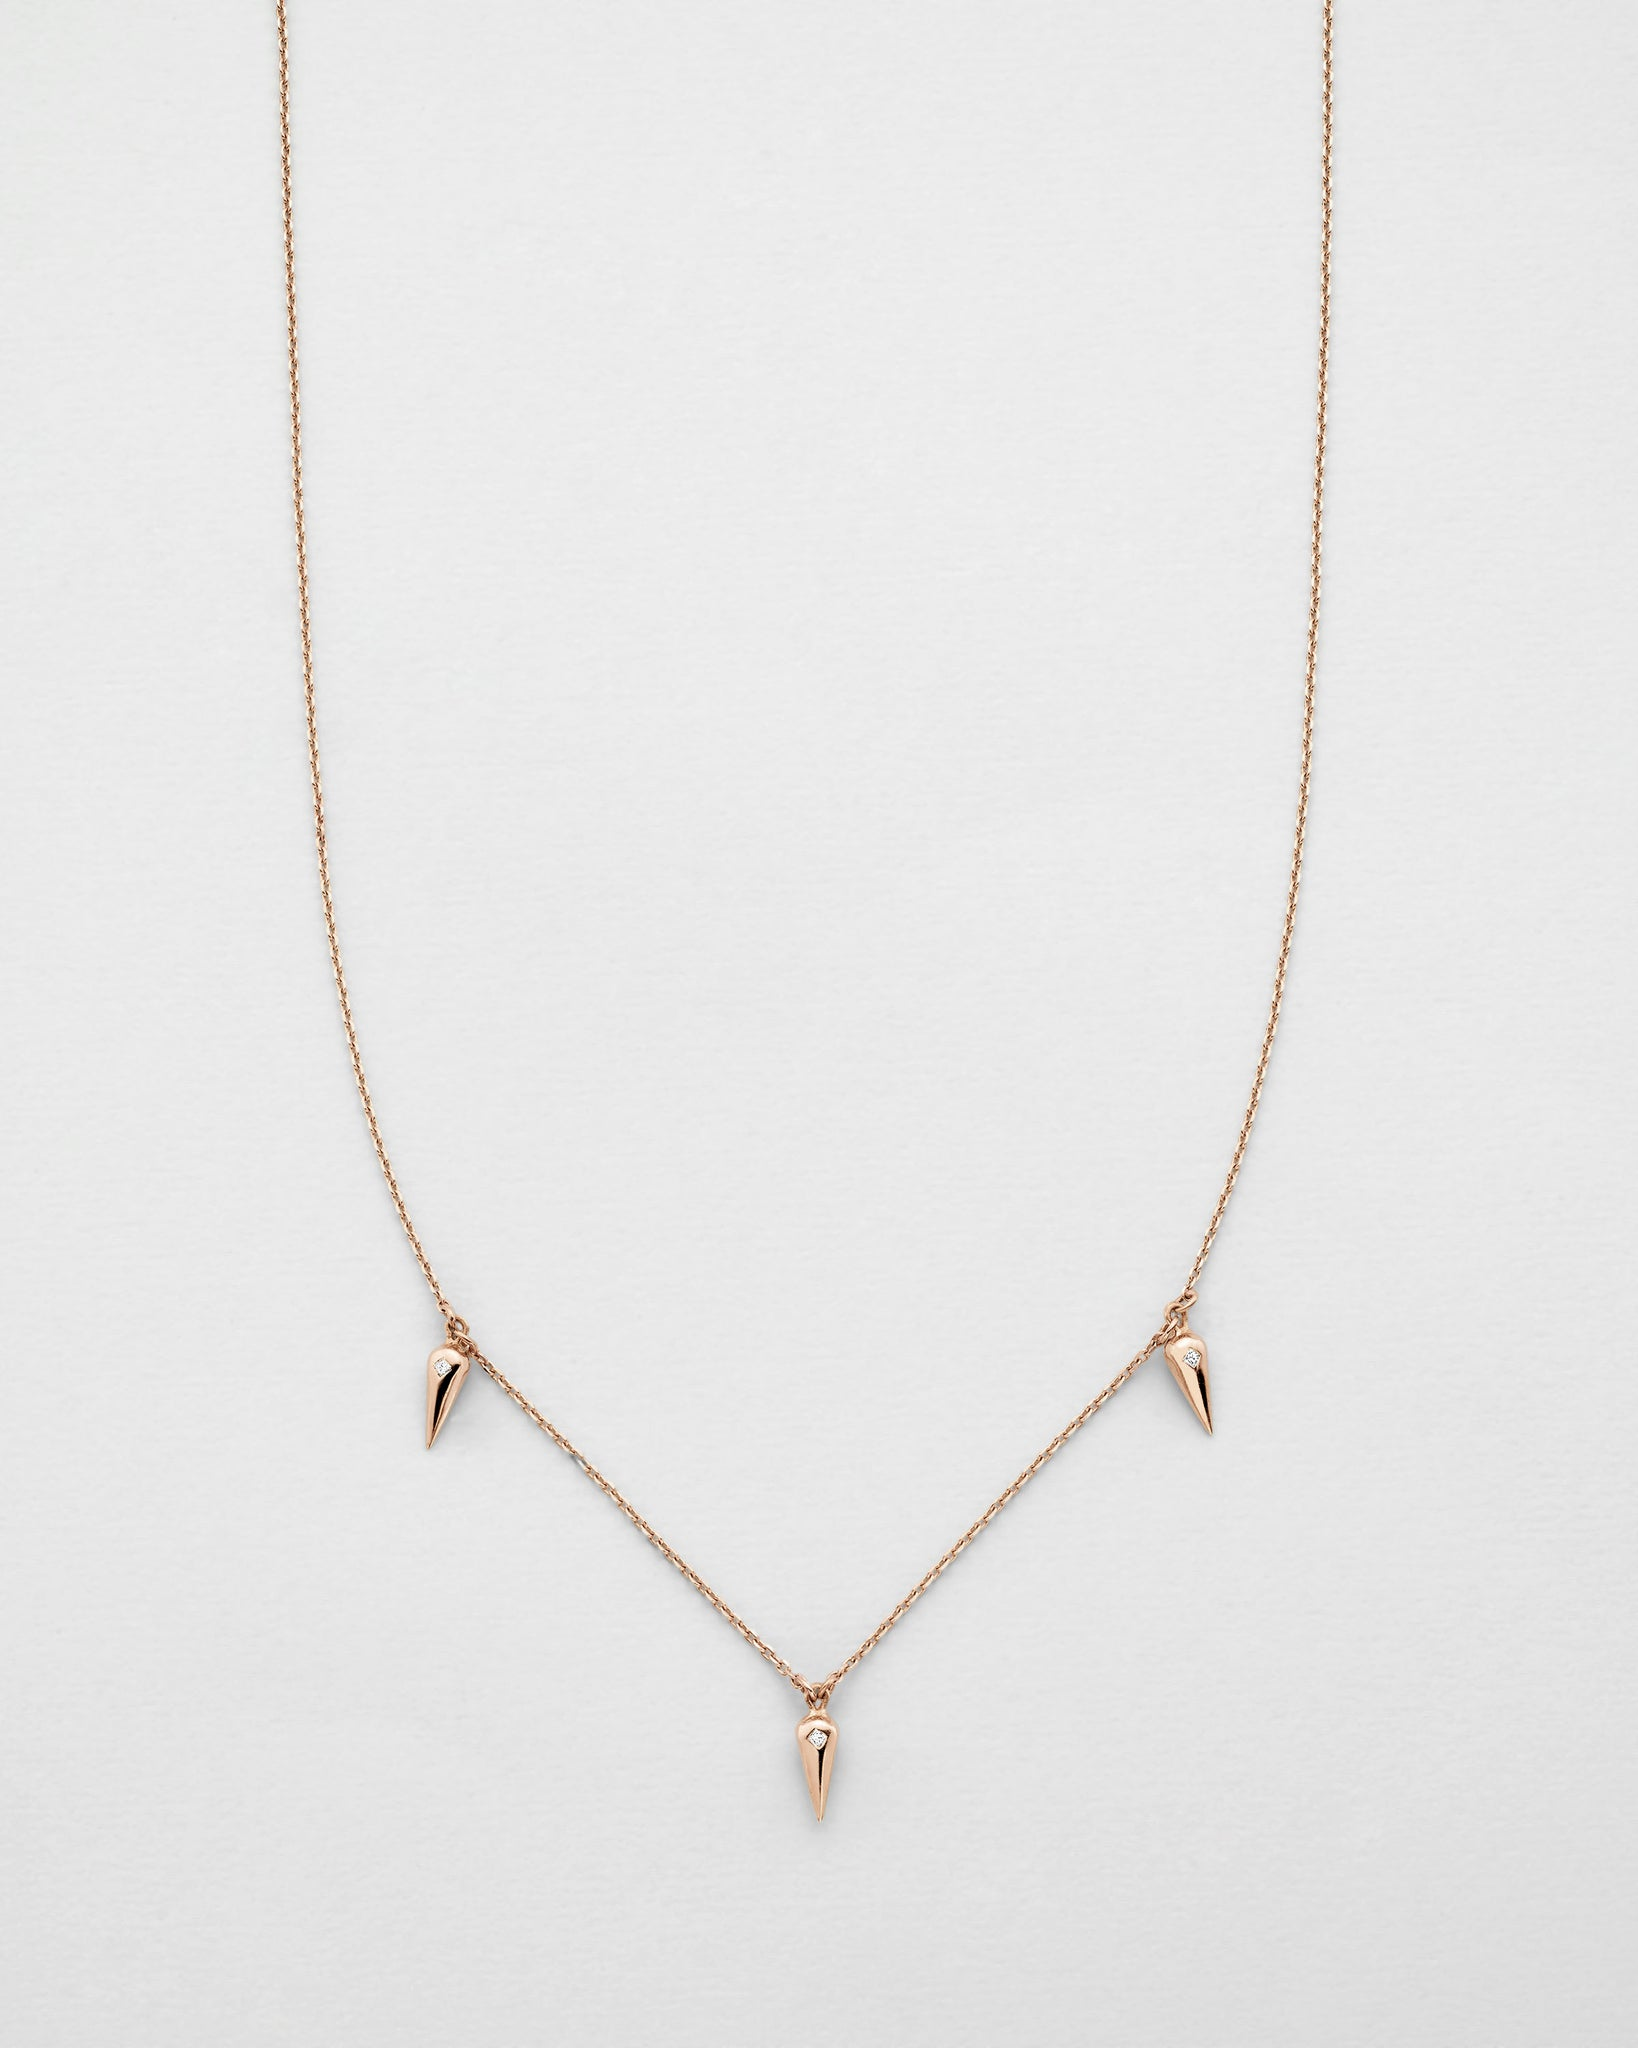 Chain Reaction Trio Pendulum Necklace